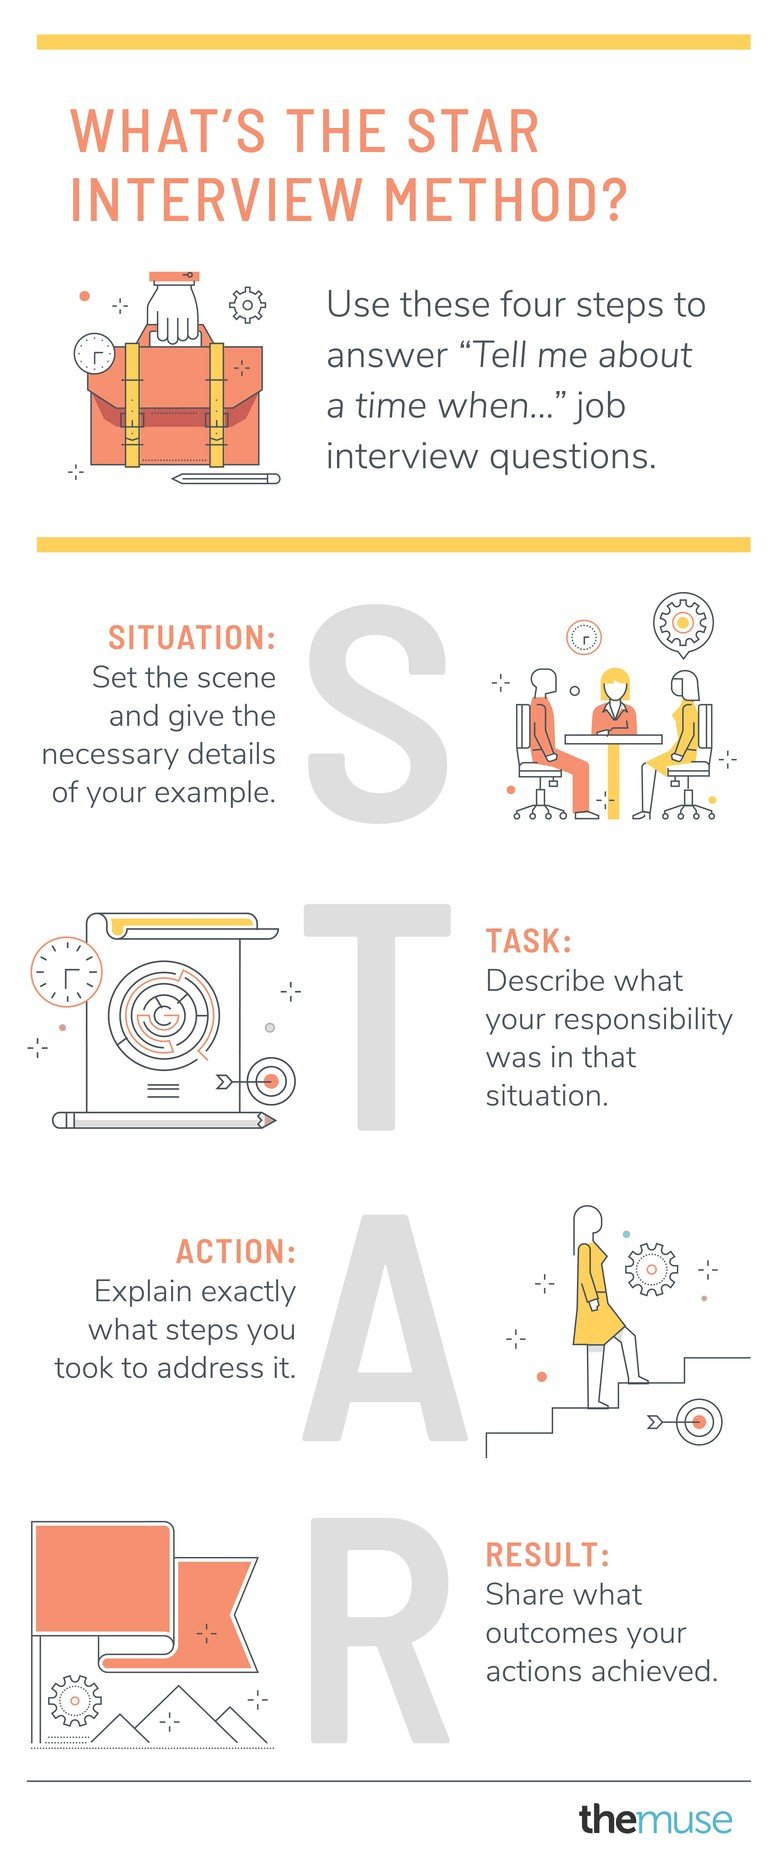 Graphic explaining the STAR interview method for job interviews: Situation, Task, Action, Result.